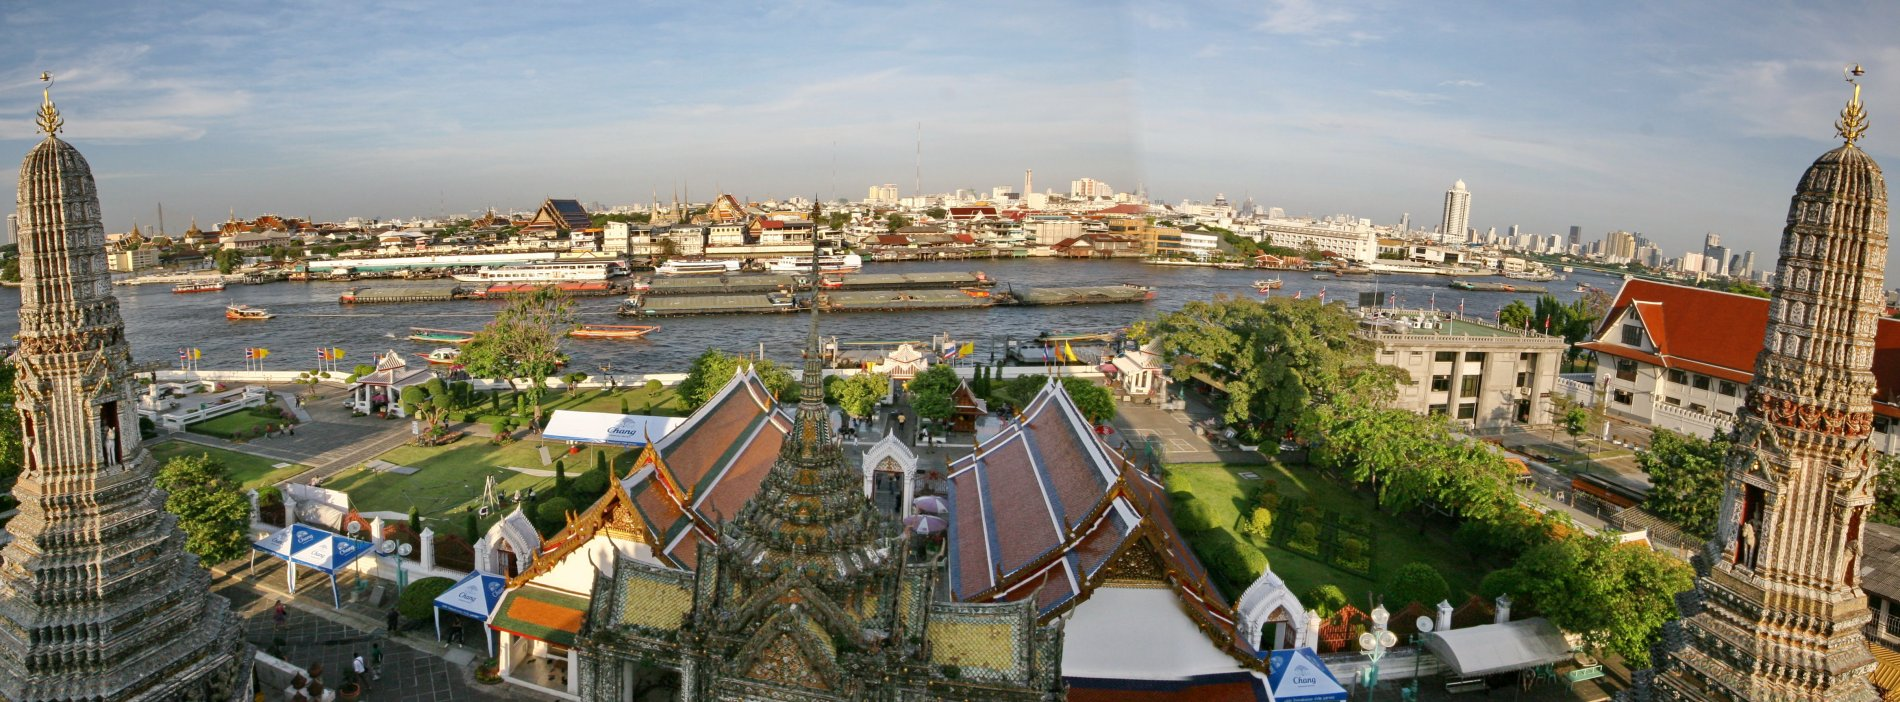 Wat Arun-016.1.JPG-commment